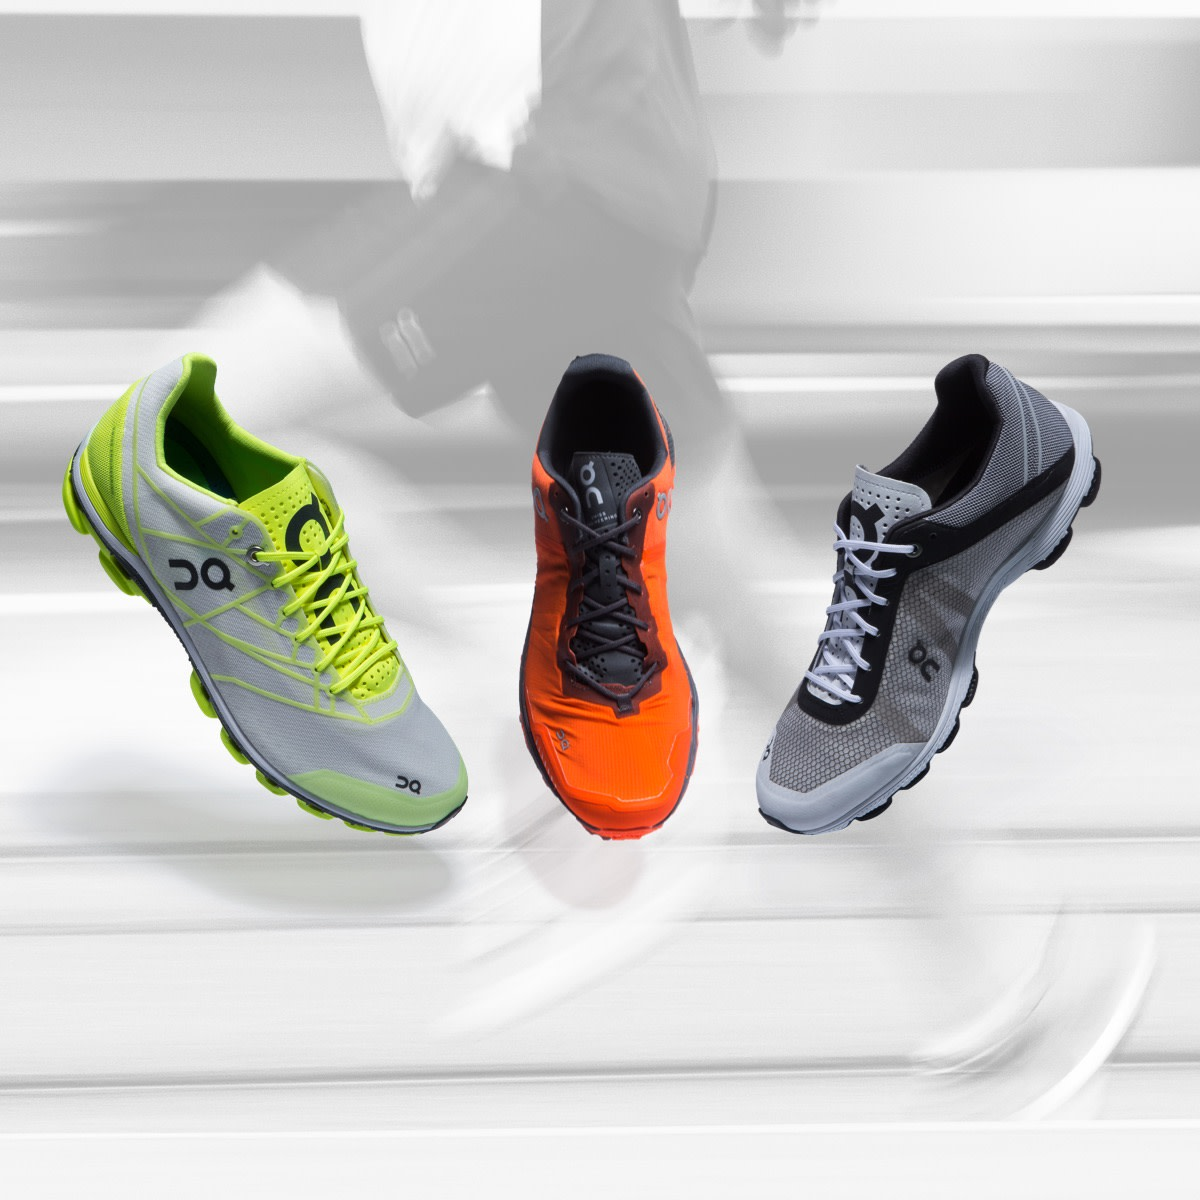 Find Your Ideal Racing Shoe On Swiss Performance Running Shoes Clothing